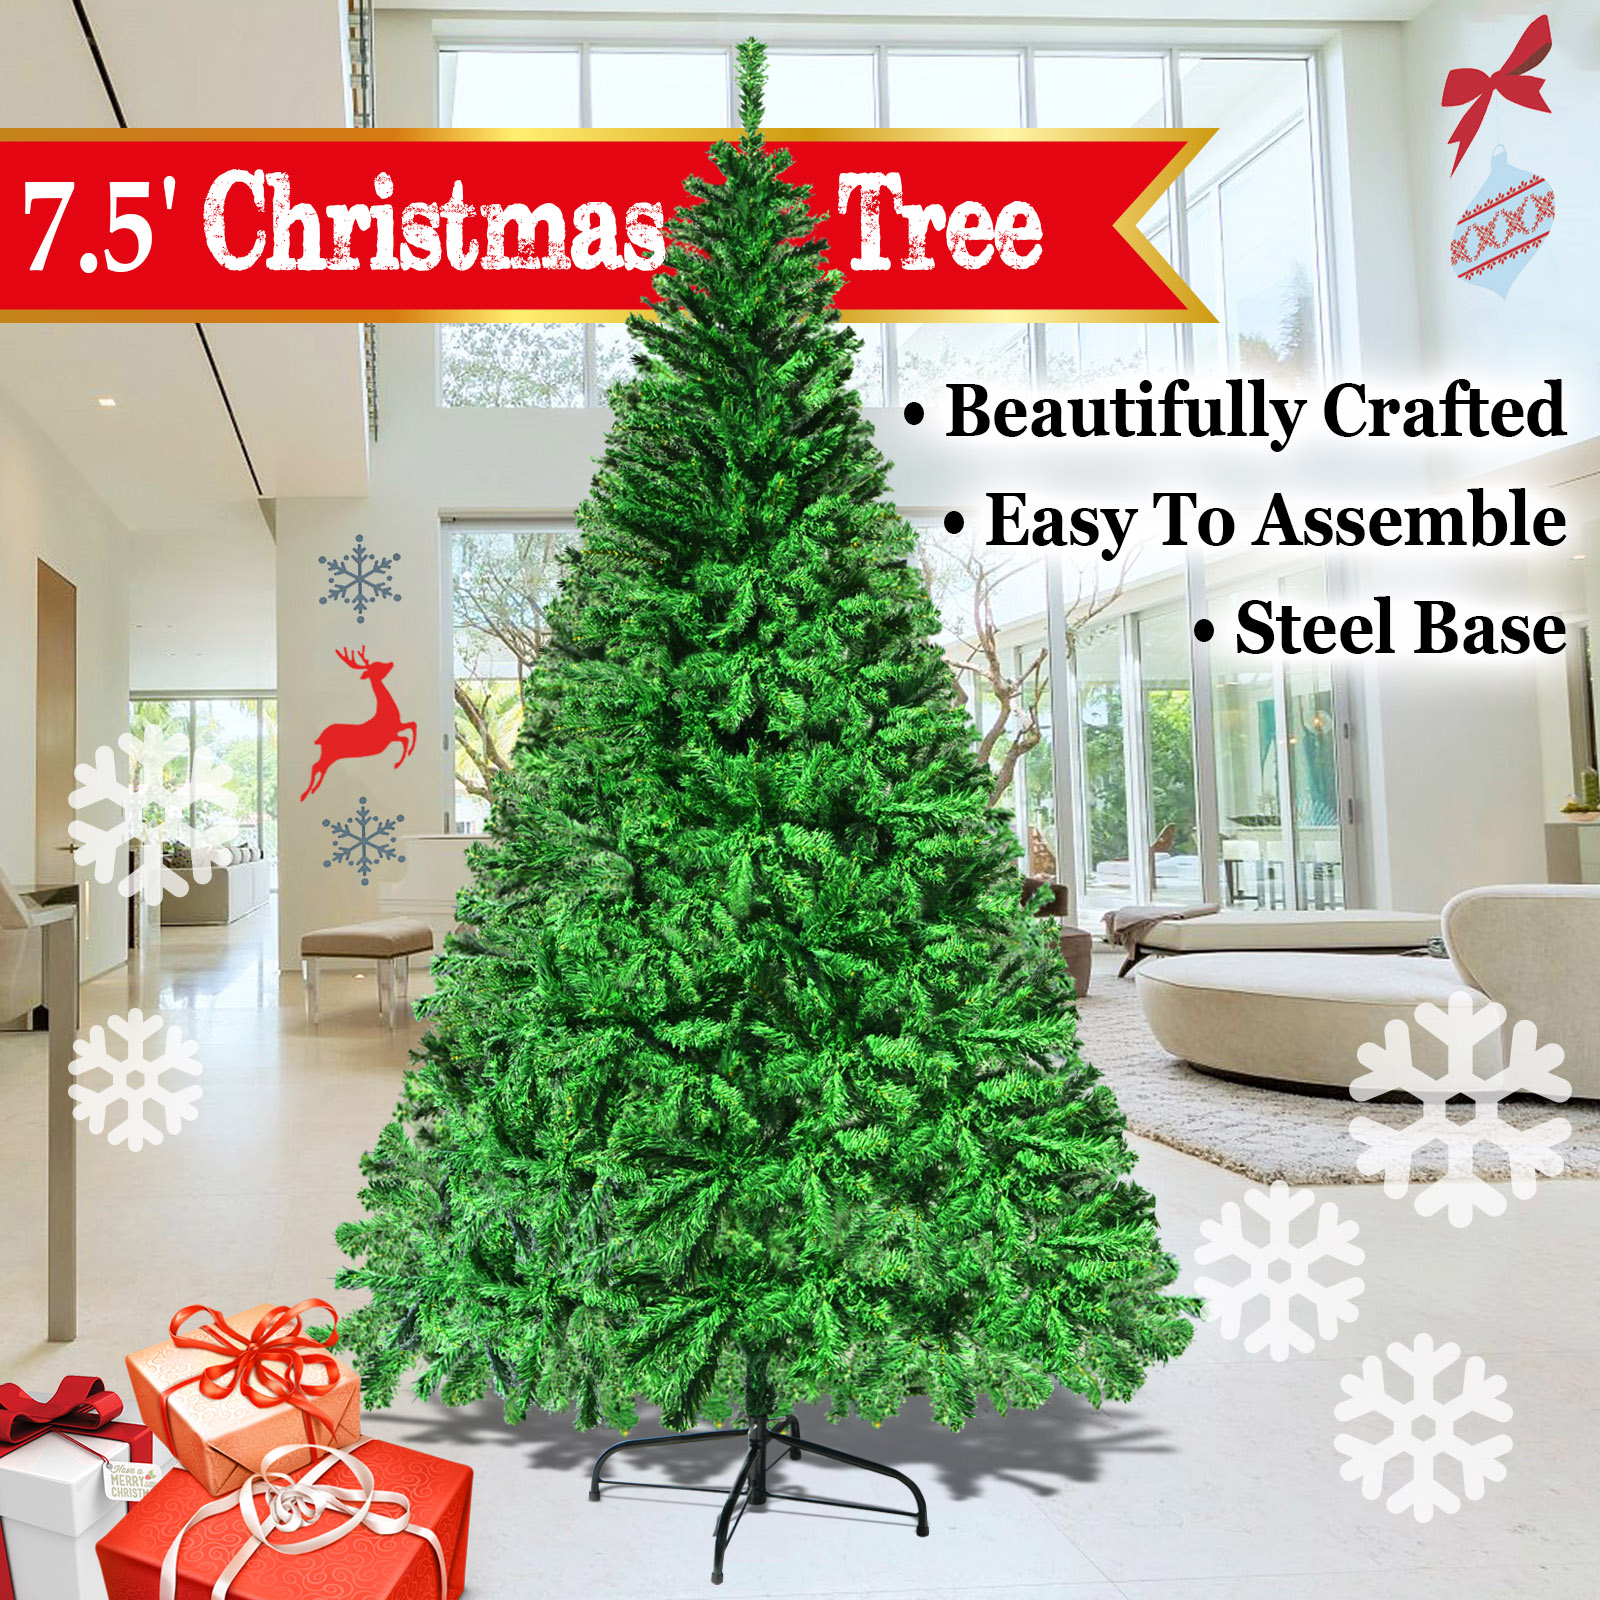 Strong Camel NEW Green 7.5' Classic Pine Christmas Xmas Tree Artificial Realistic Natural Branches-1200 tips with Solid Metal Stand